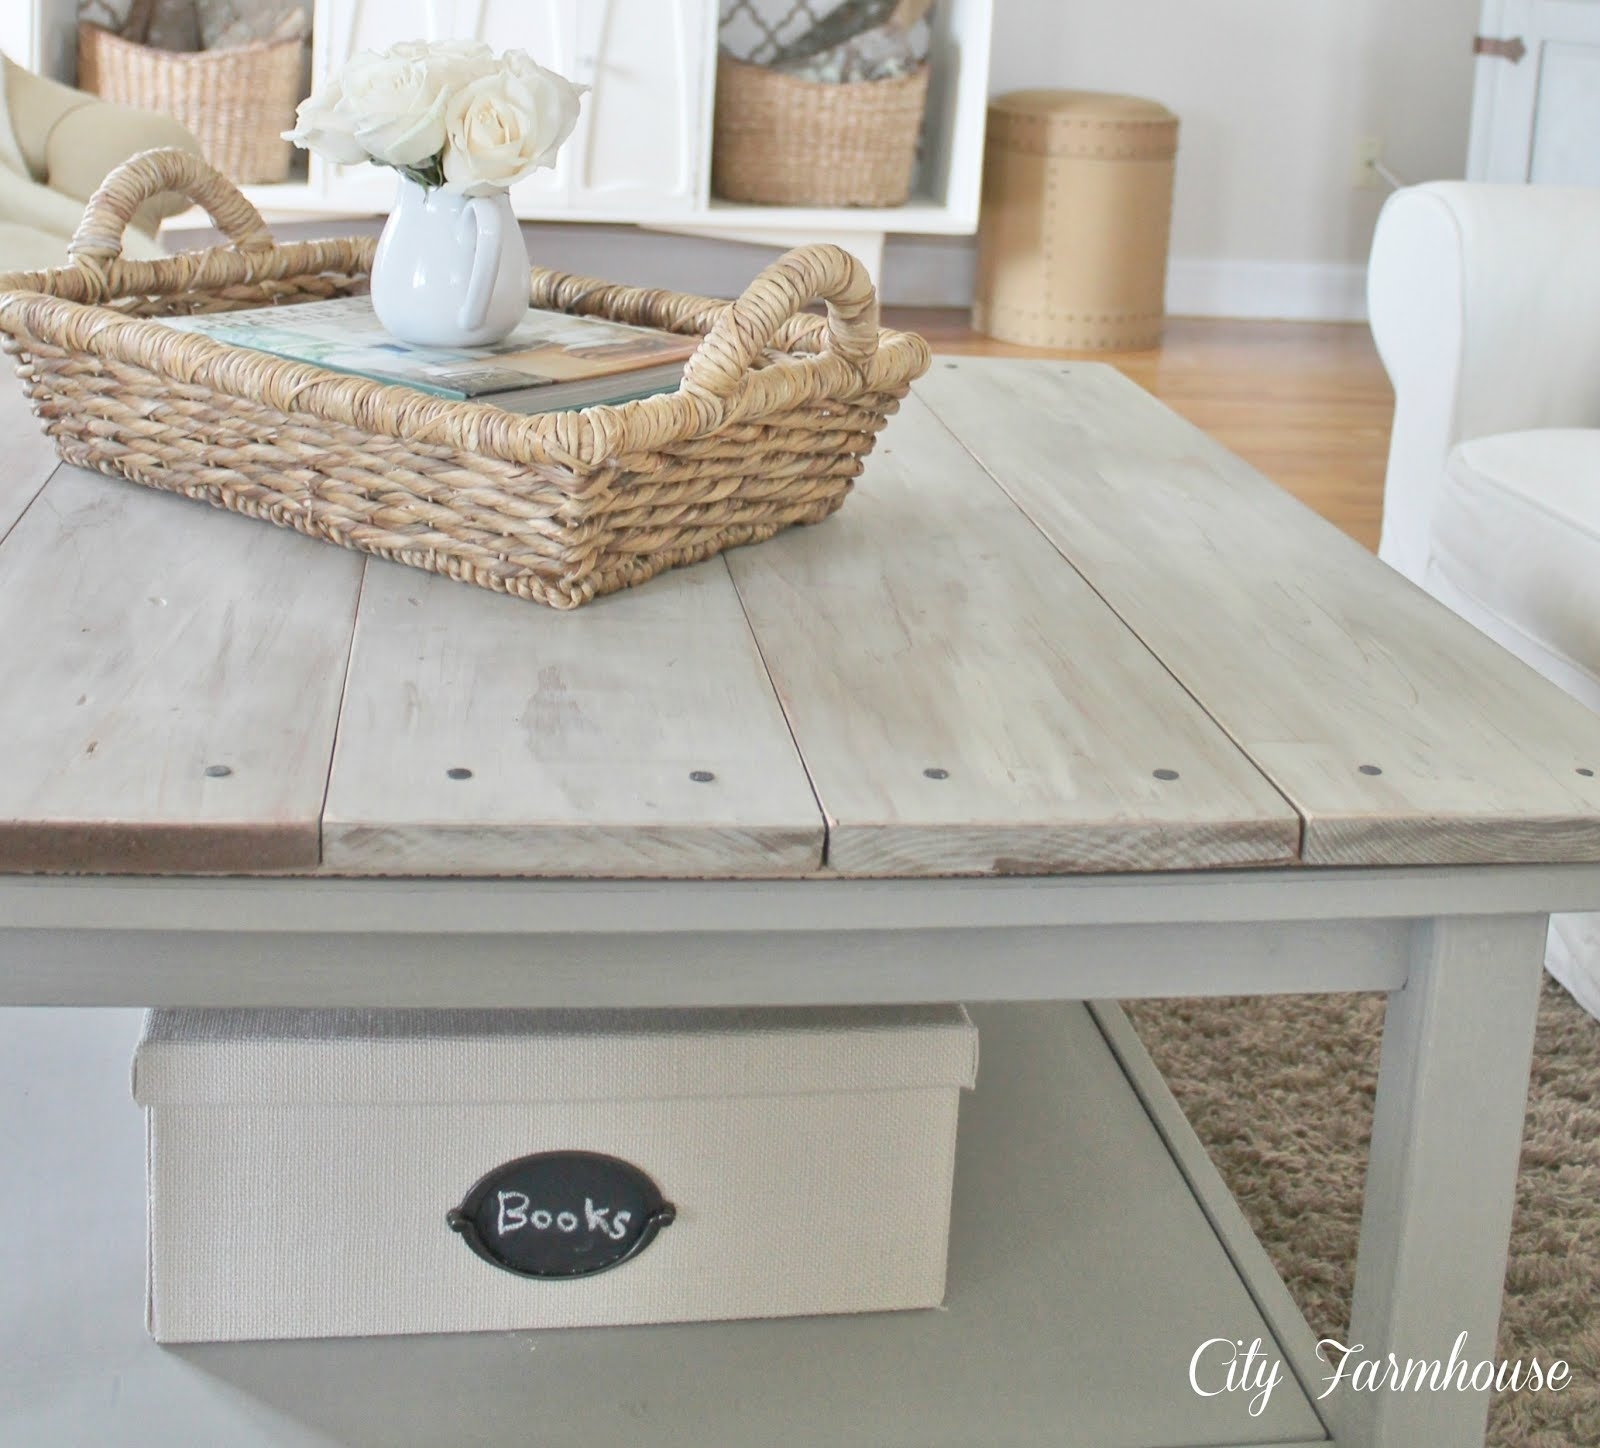 Lime Wash Coffee Table - Writehookstudio with regard to Limewash Coffee Tables (Image 8 of 30)